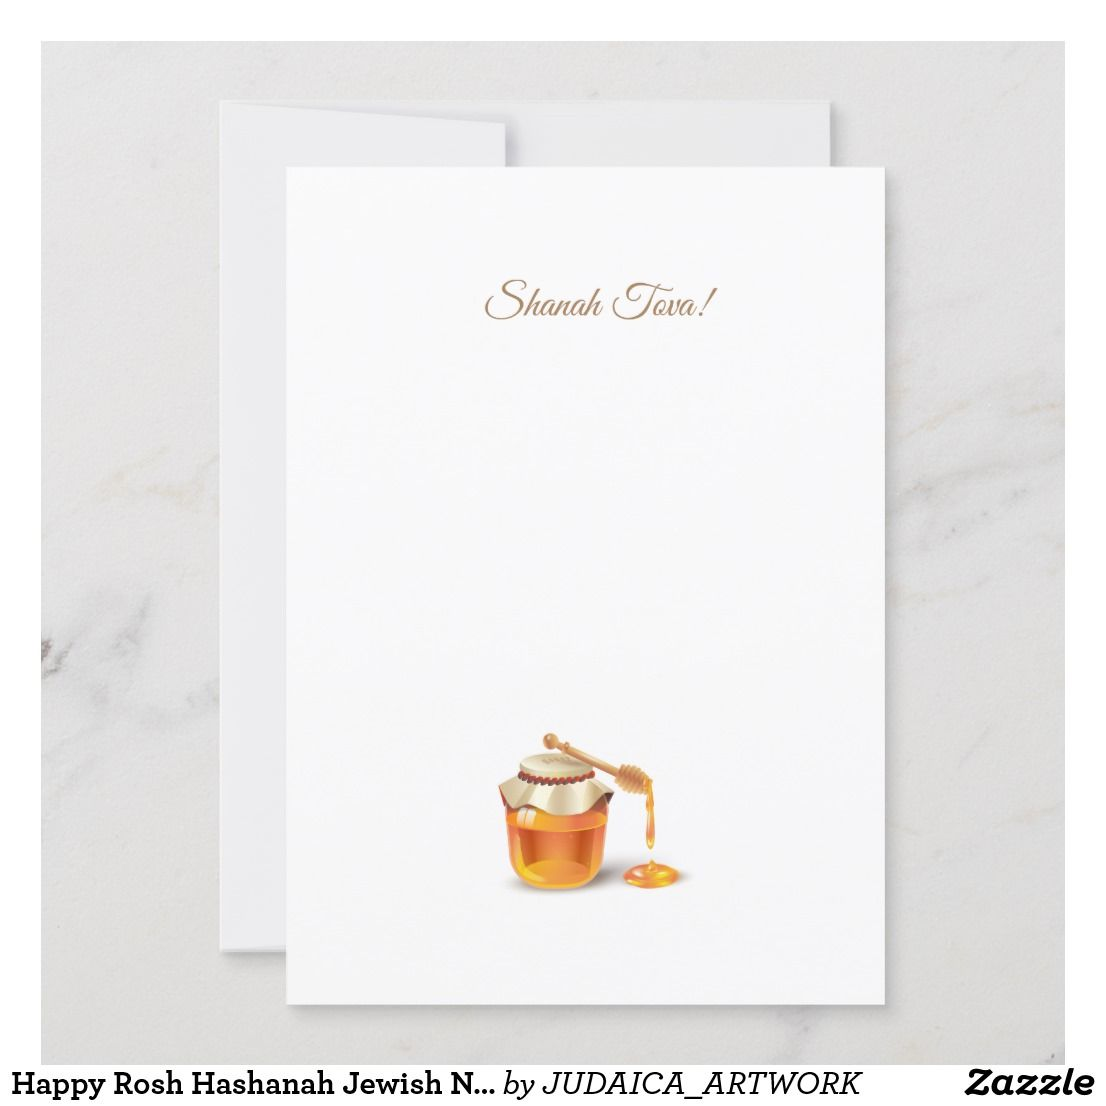 Happy Rosh Hashanah Jewish New Year Greeting Card | Zazzle.com #roshhashanah